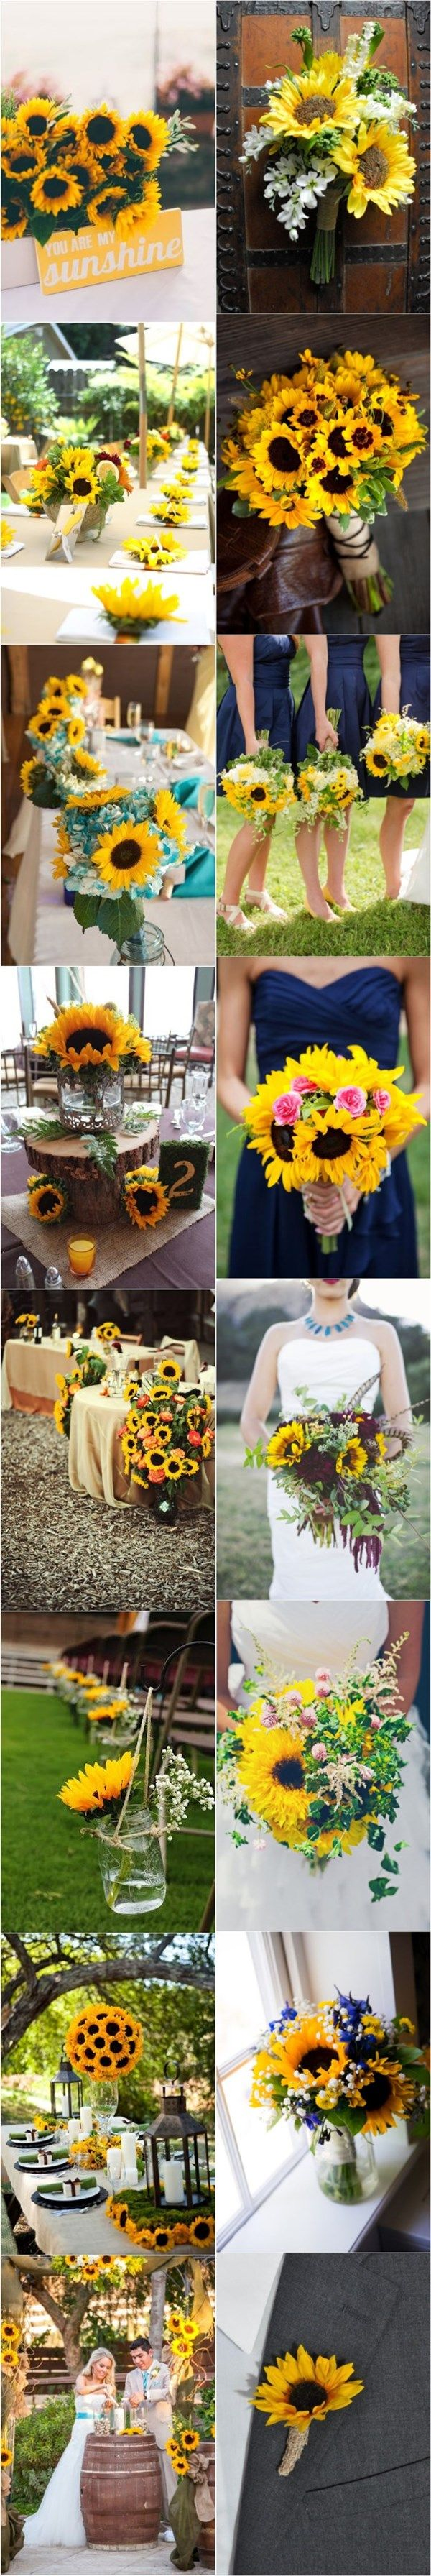 70 Sunflower Wedding Ideas And Wedding Invitations Will You Marry